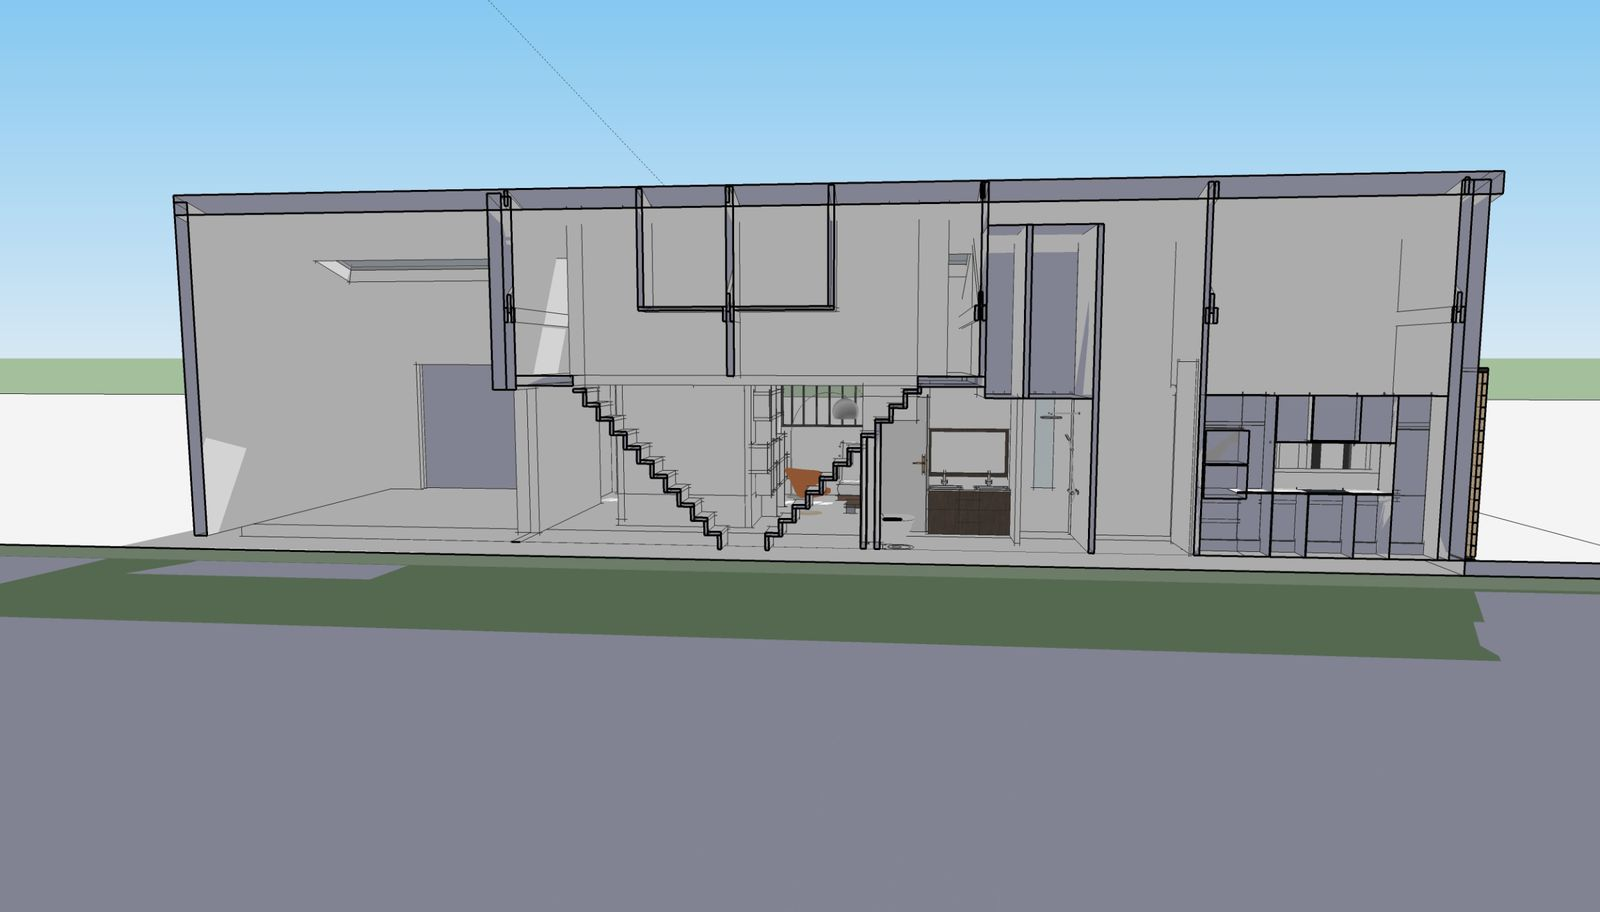 Premi re esquisse du projet r novation d 39 une maison du for Plan de loft